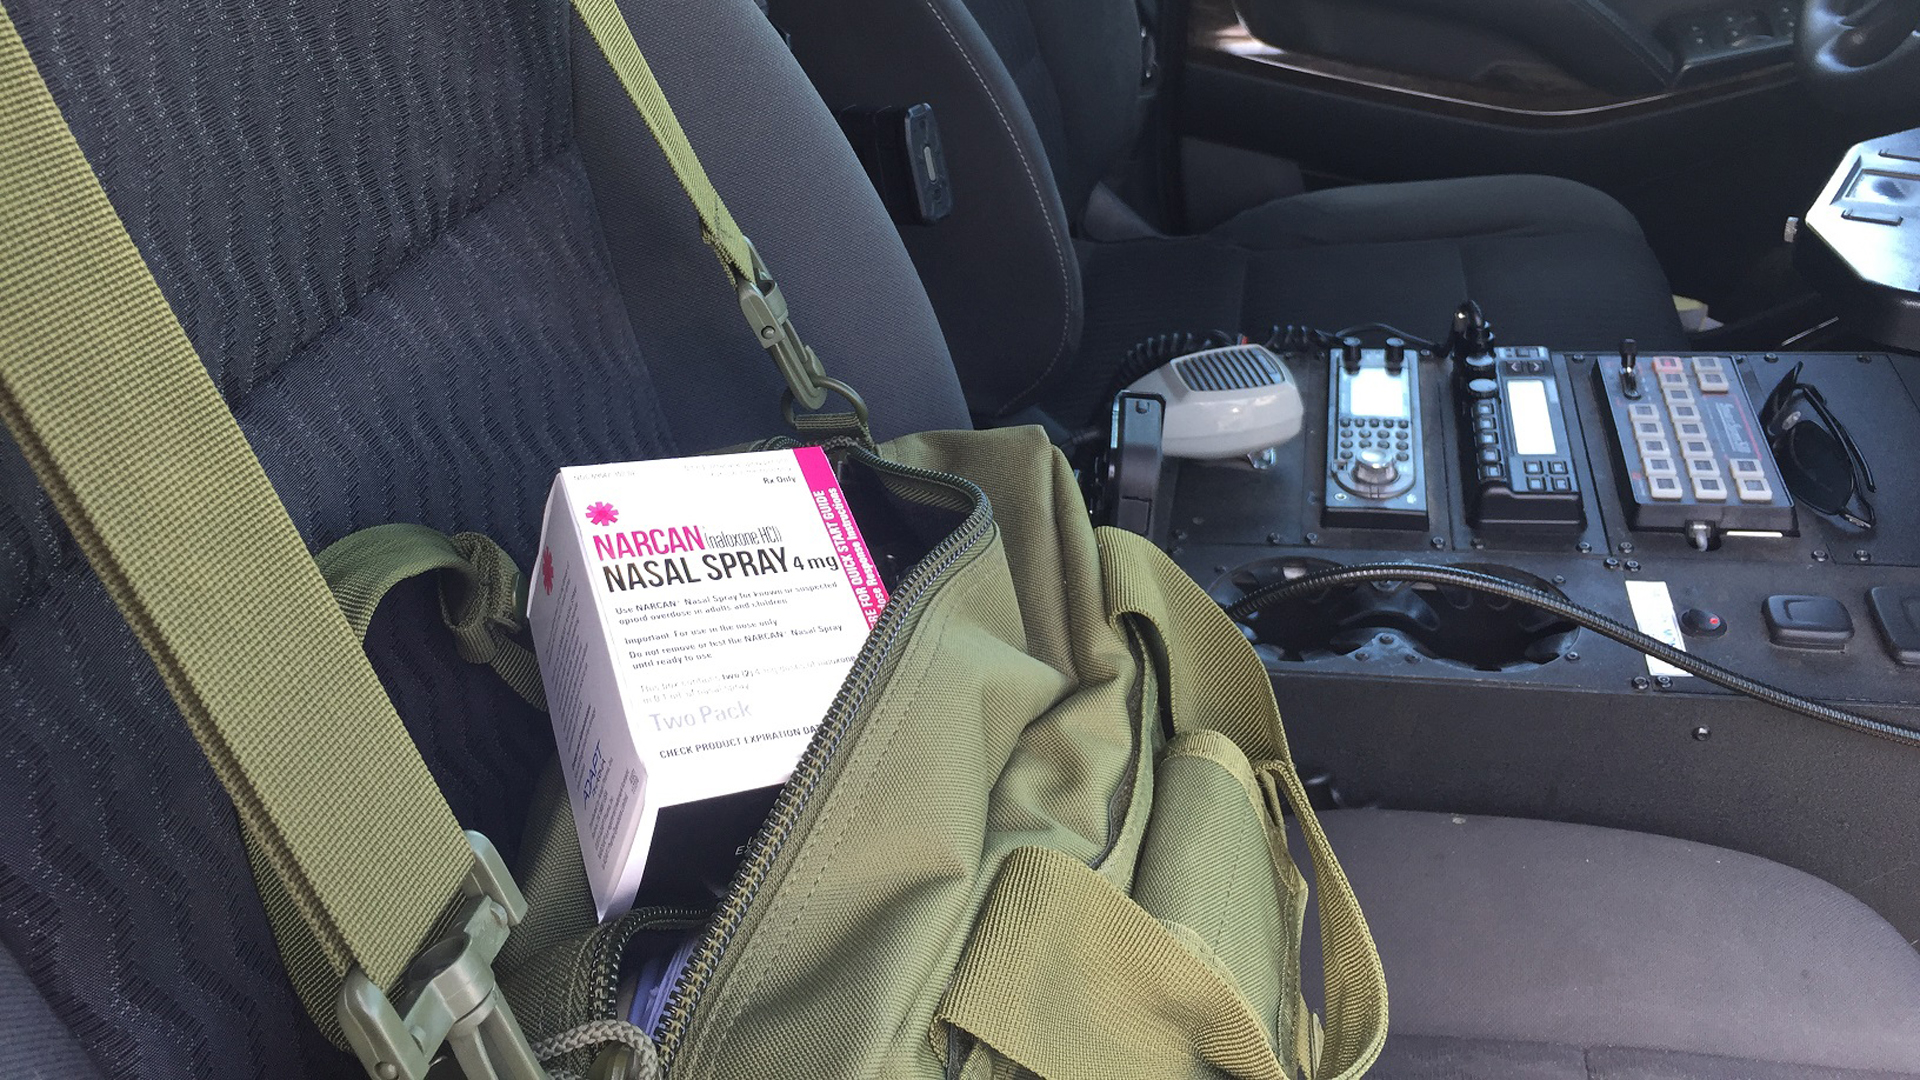 A package of Naloxone spray, used to combat the effects of opioid overdose, is seen in a Santa Barbara County Sheriff's Office patrol car in a photo released by the agency on Jan. 25, 2019.